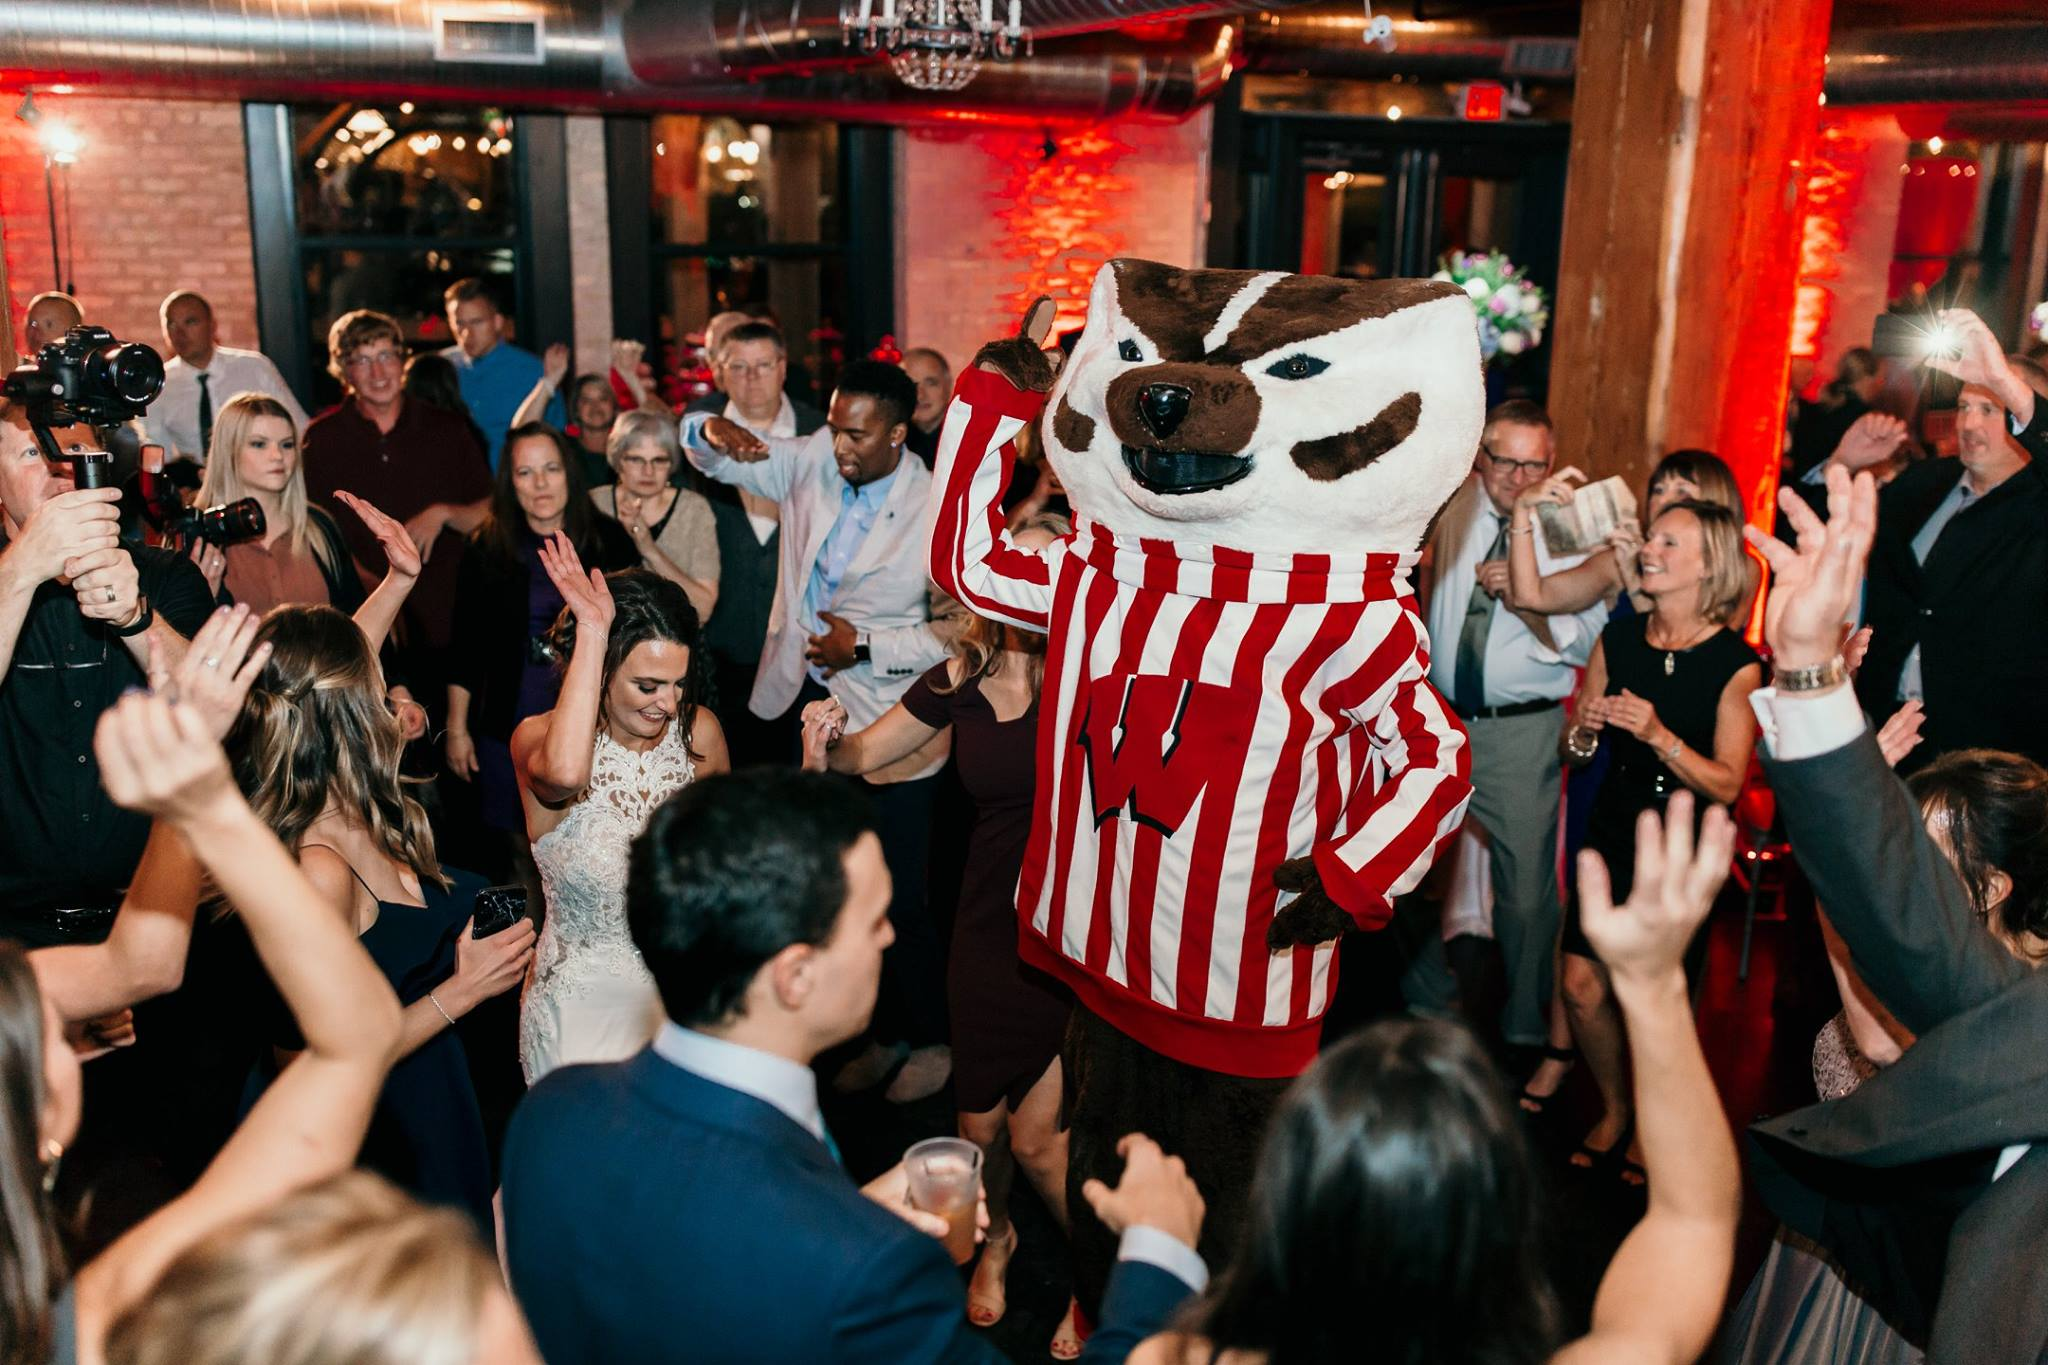 A wedding reception event with mascots and guests.